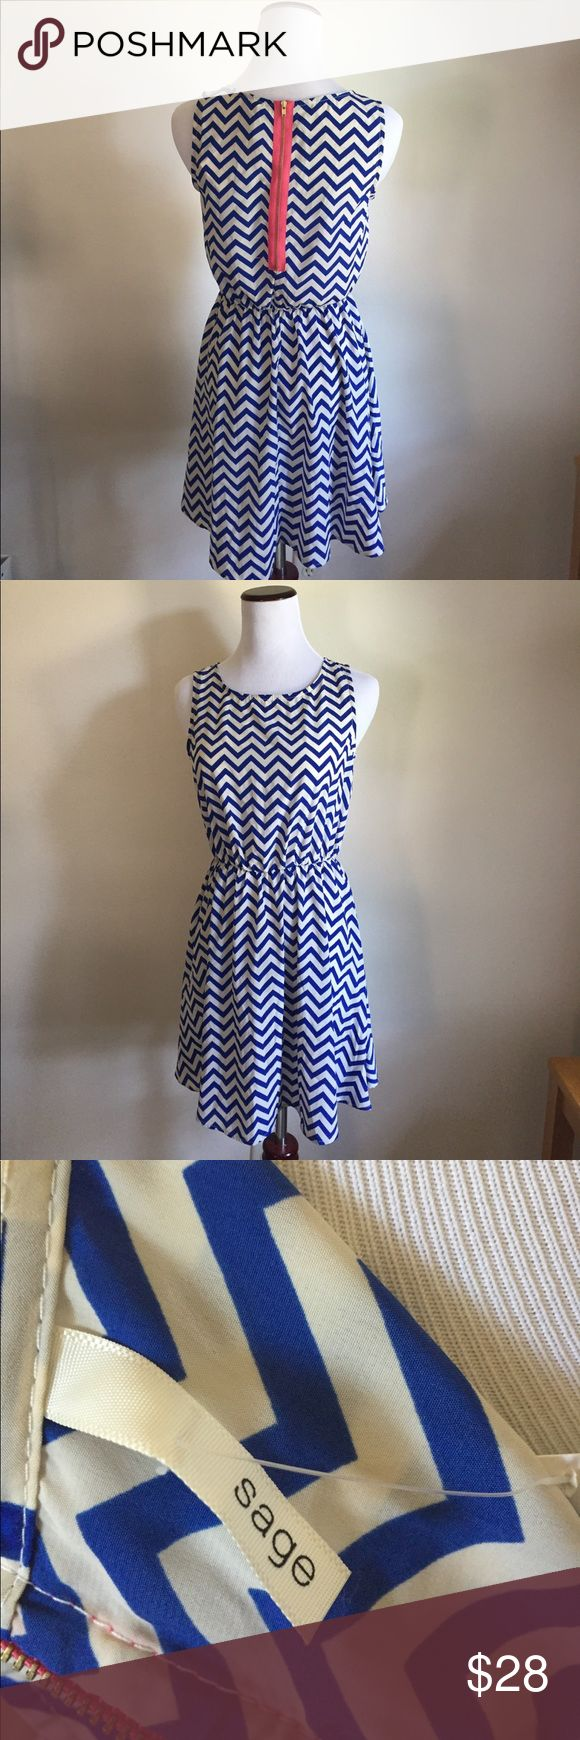 Blue chevron dress Love the exposed pink zipper on the dress.  The blue and white chevron dress is perfect for brunch or an afternoon wedding.  Pet friendly home. Sage Dresses